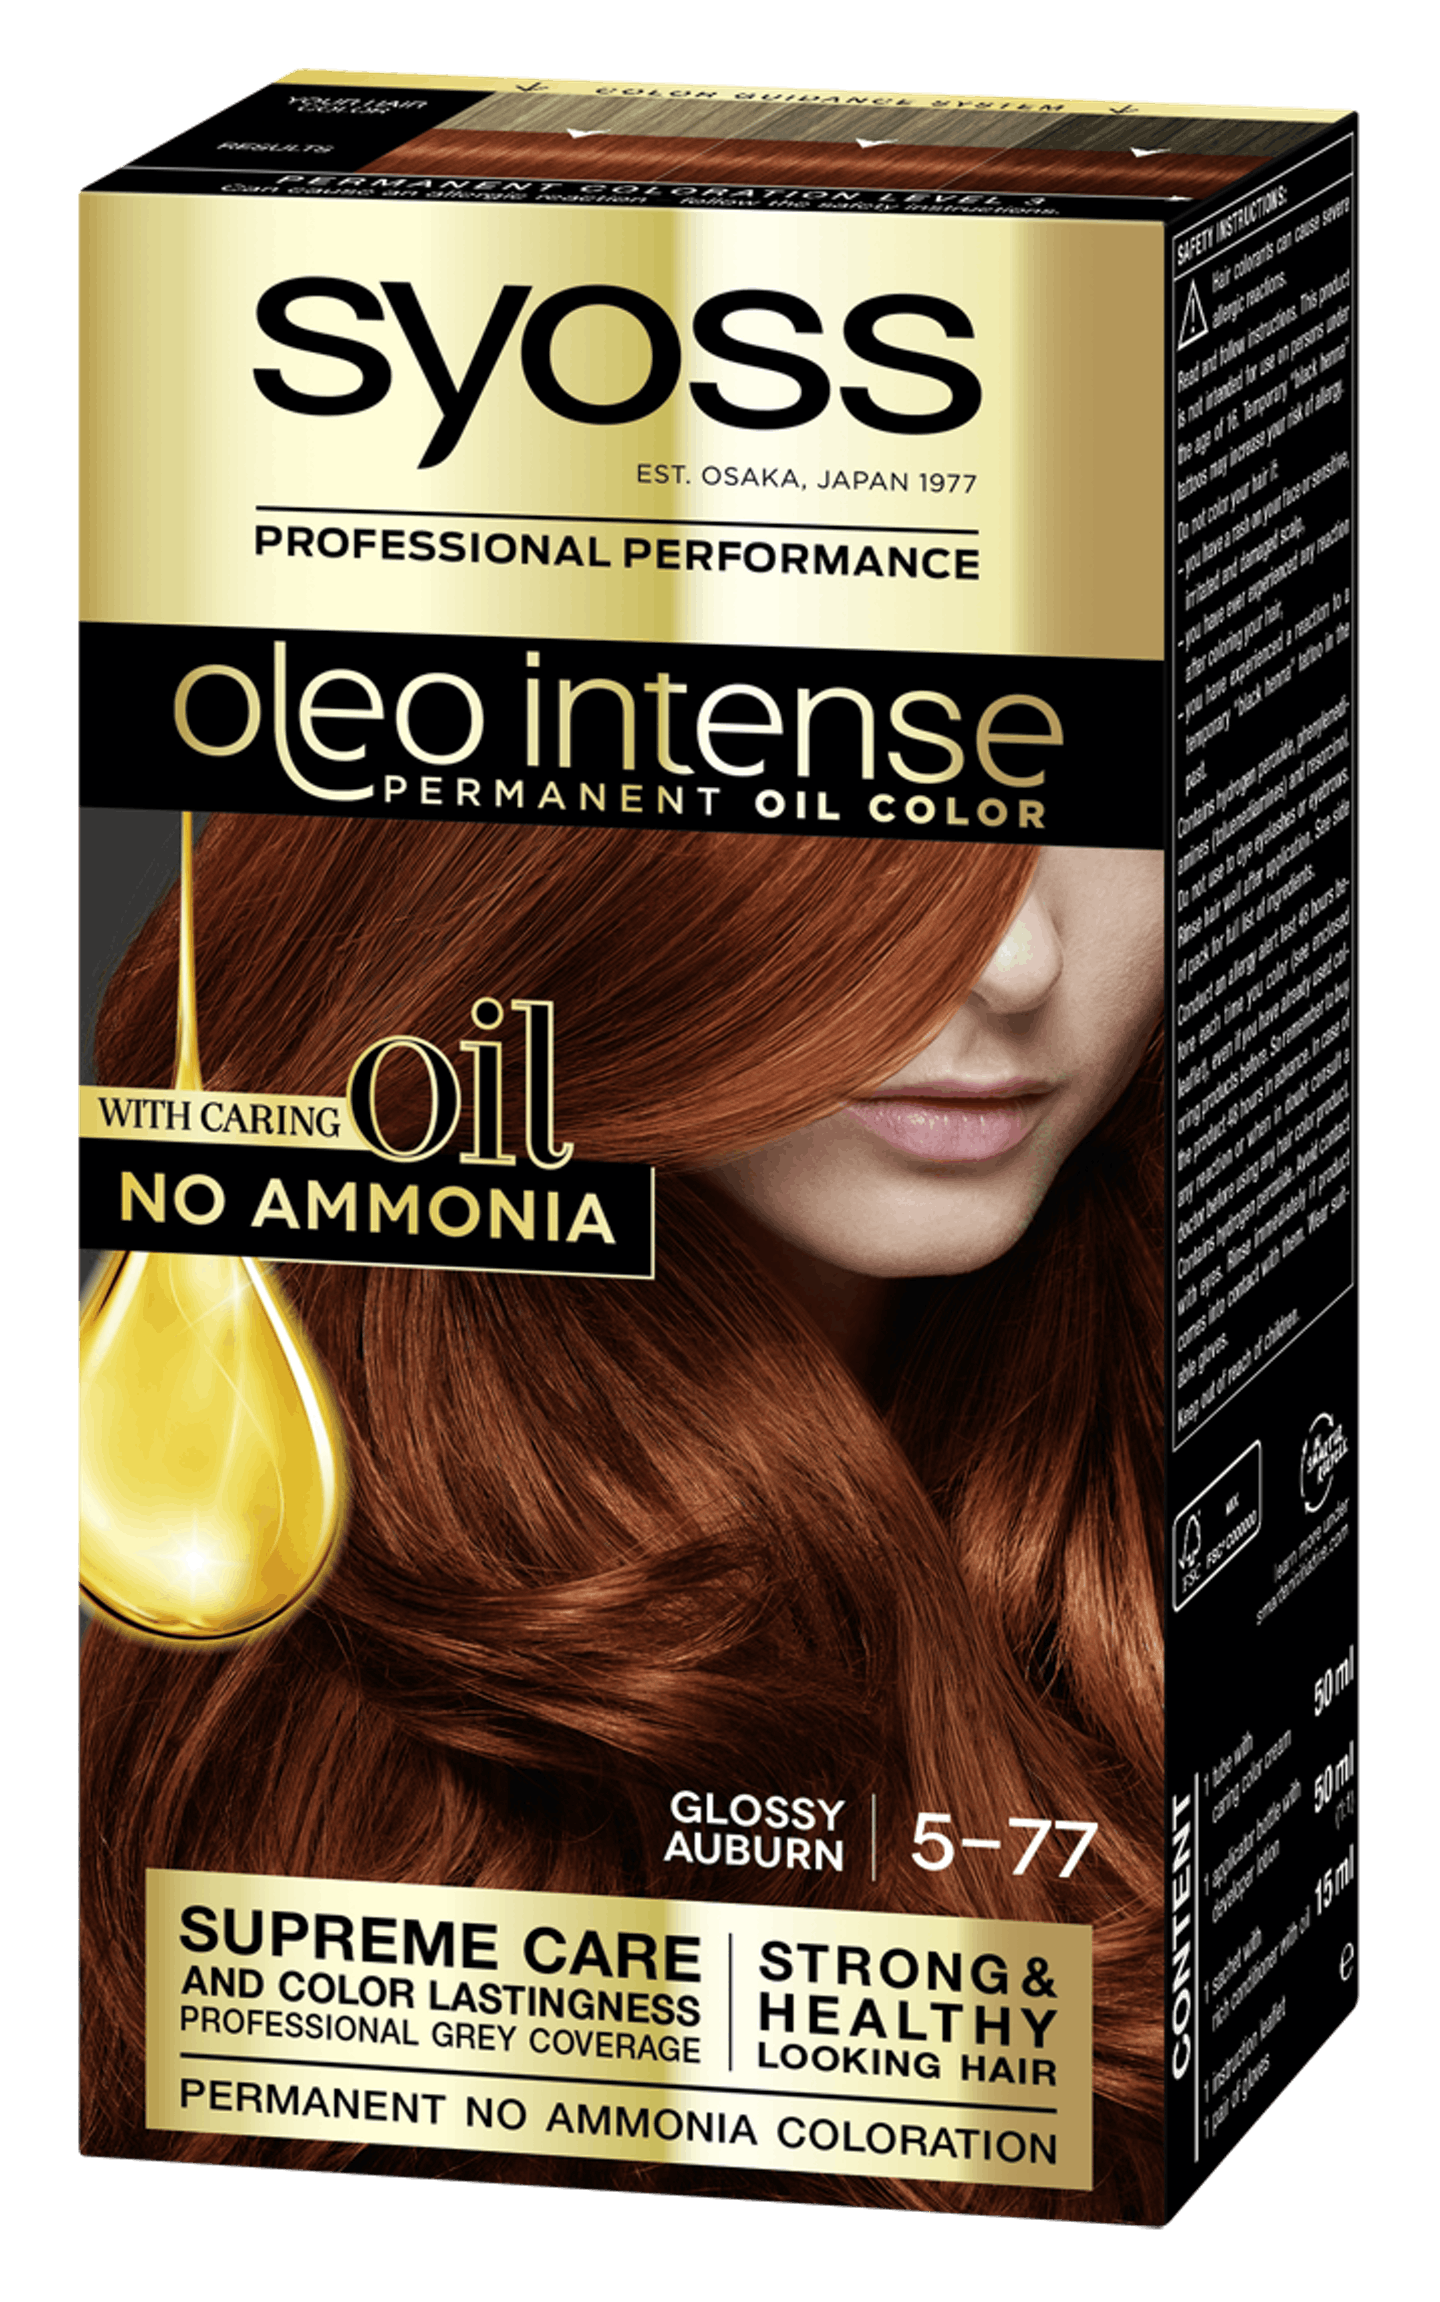 Syoss Oleo Intense Permanent Oil Color 5-77 Glossy Auburn